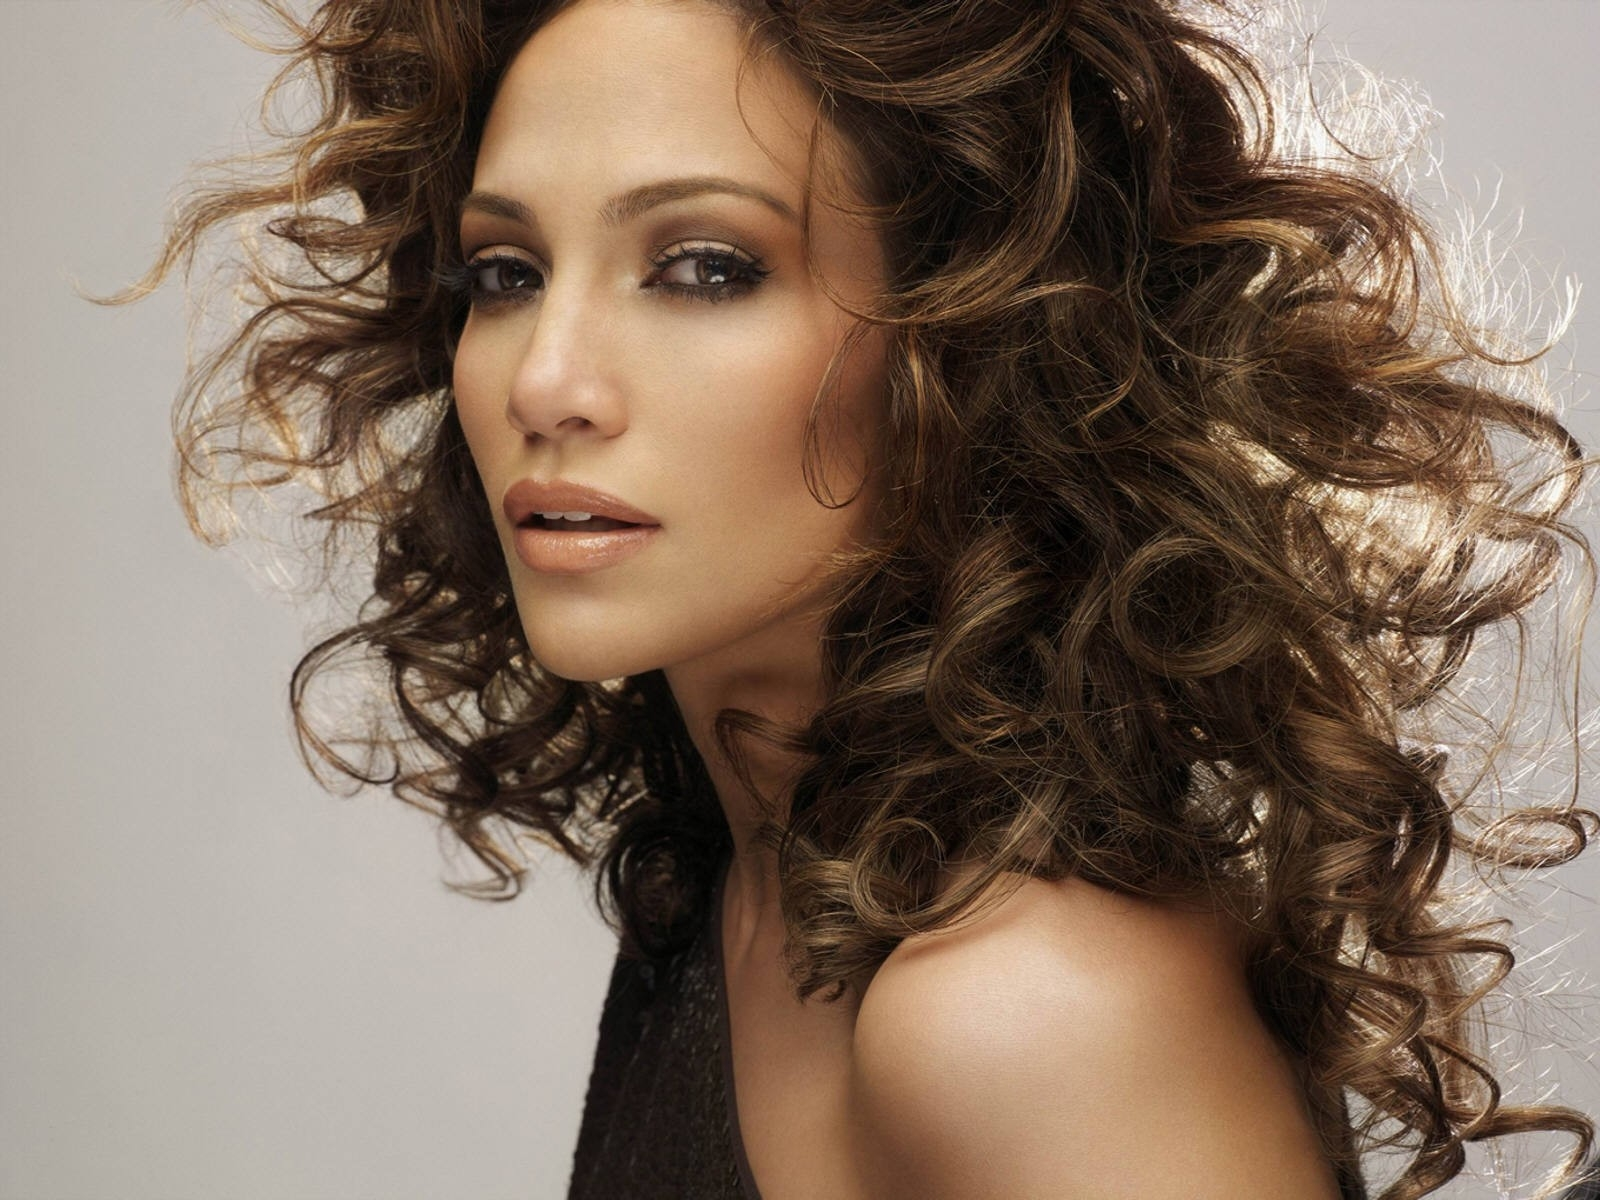 Wallpaper di Jennifer Lopez che ricorda la copertina di Ray of Light, di Madonna